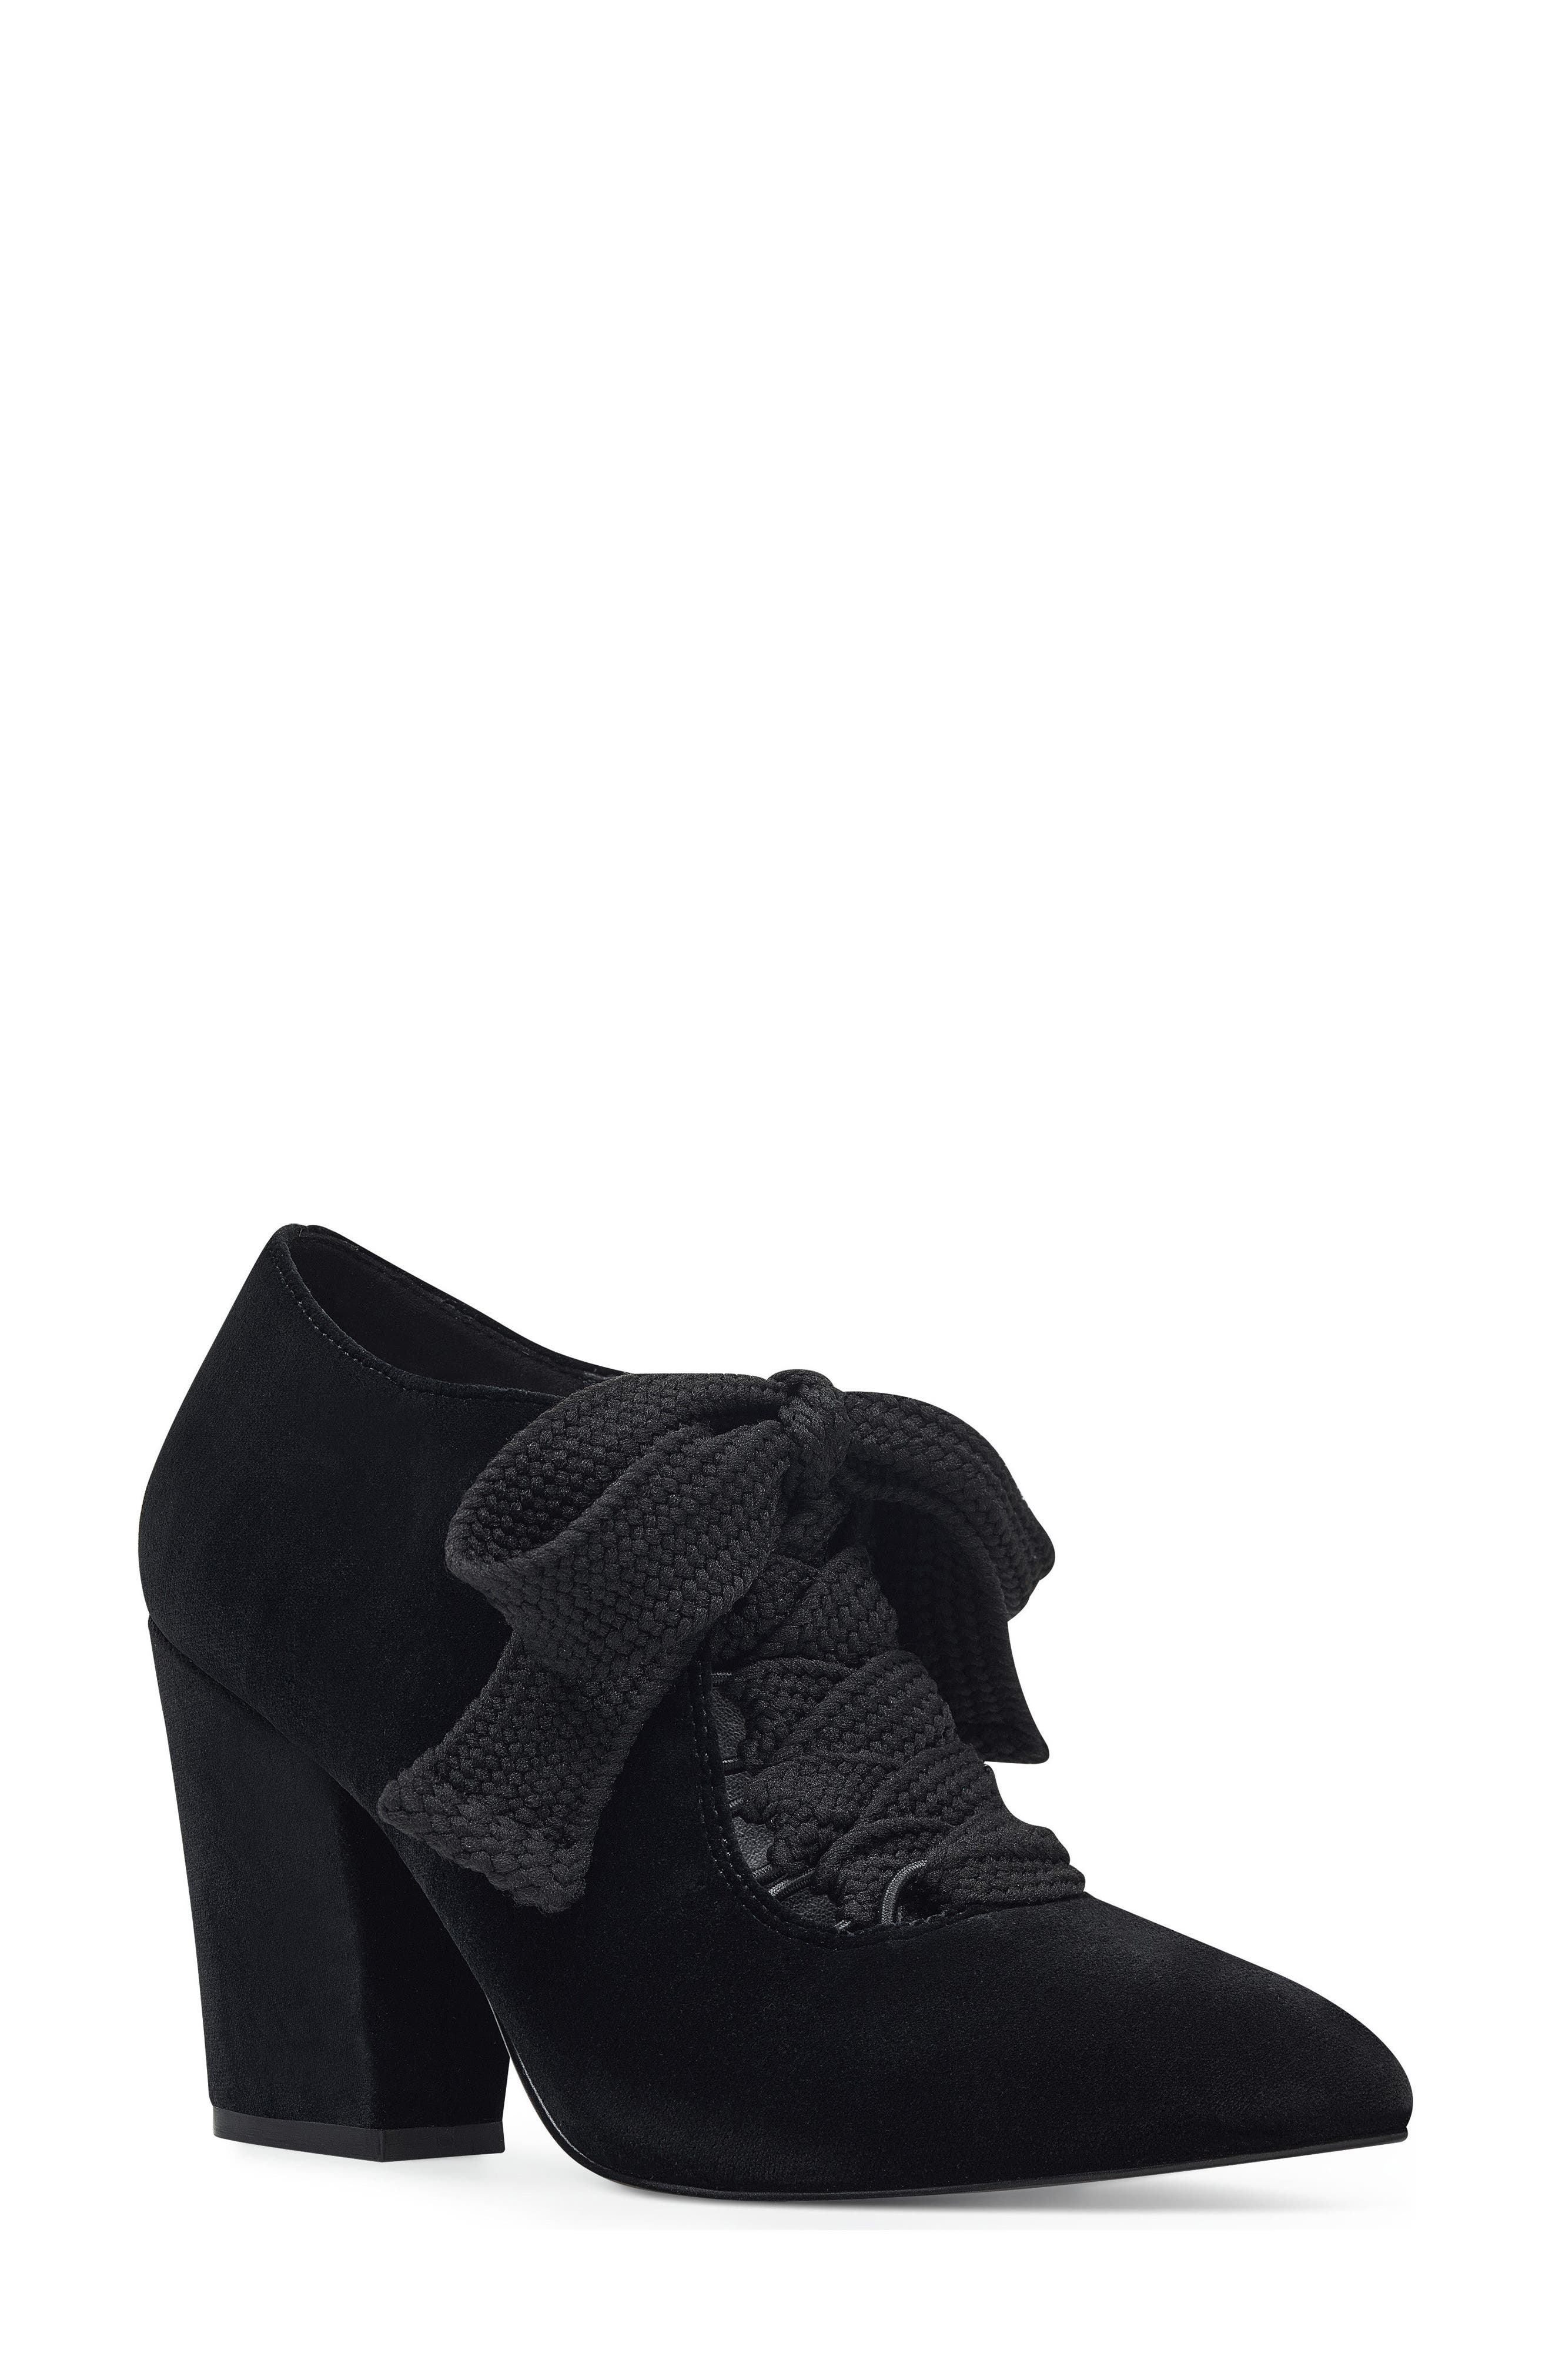 Sweeorn Lace-Up Bootie,                             Main thumbnail 1, color,                             009